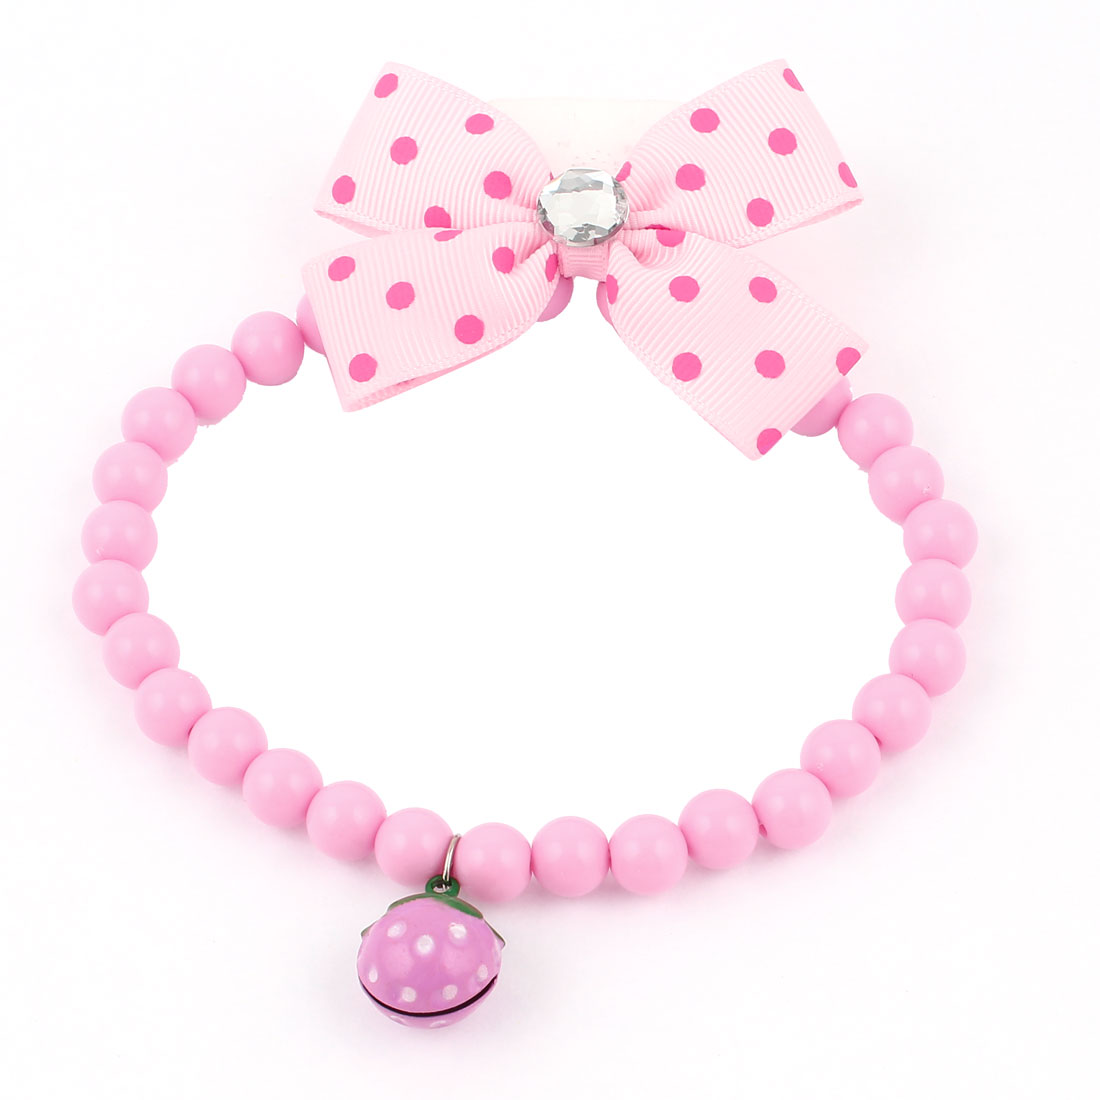 Metal Bell Pendant Bowtie Accent Pet Dog Plastic Round Beads Collar Necklace Pink M